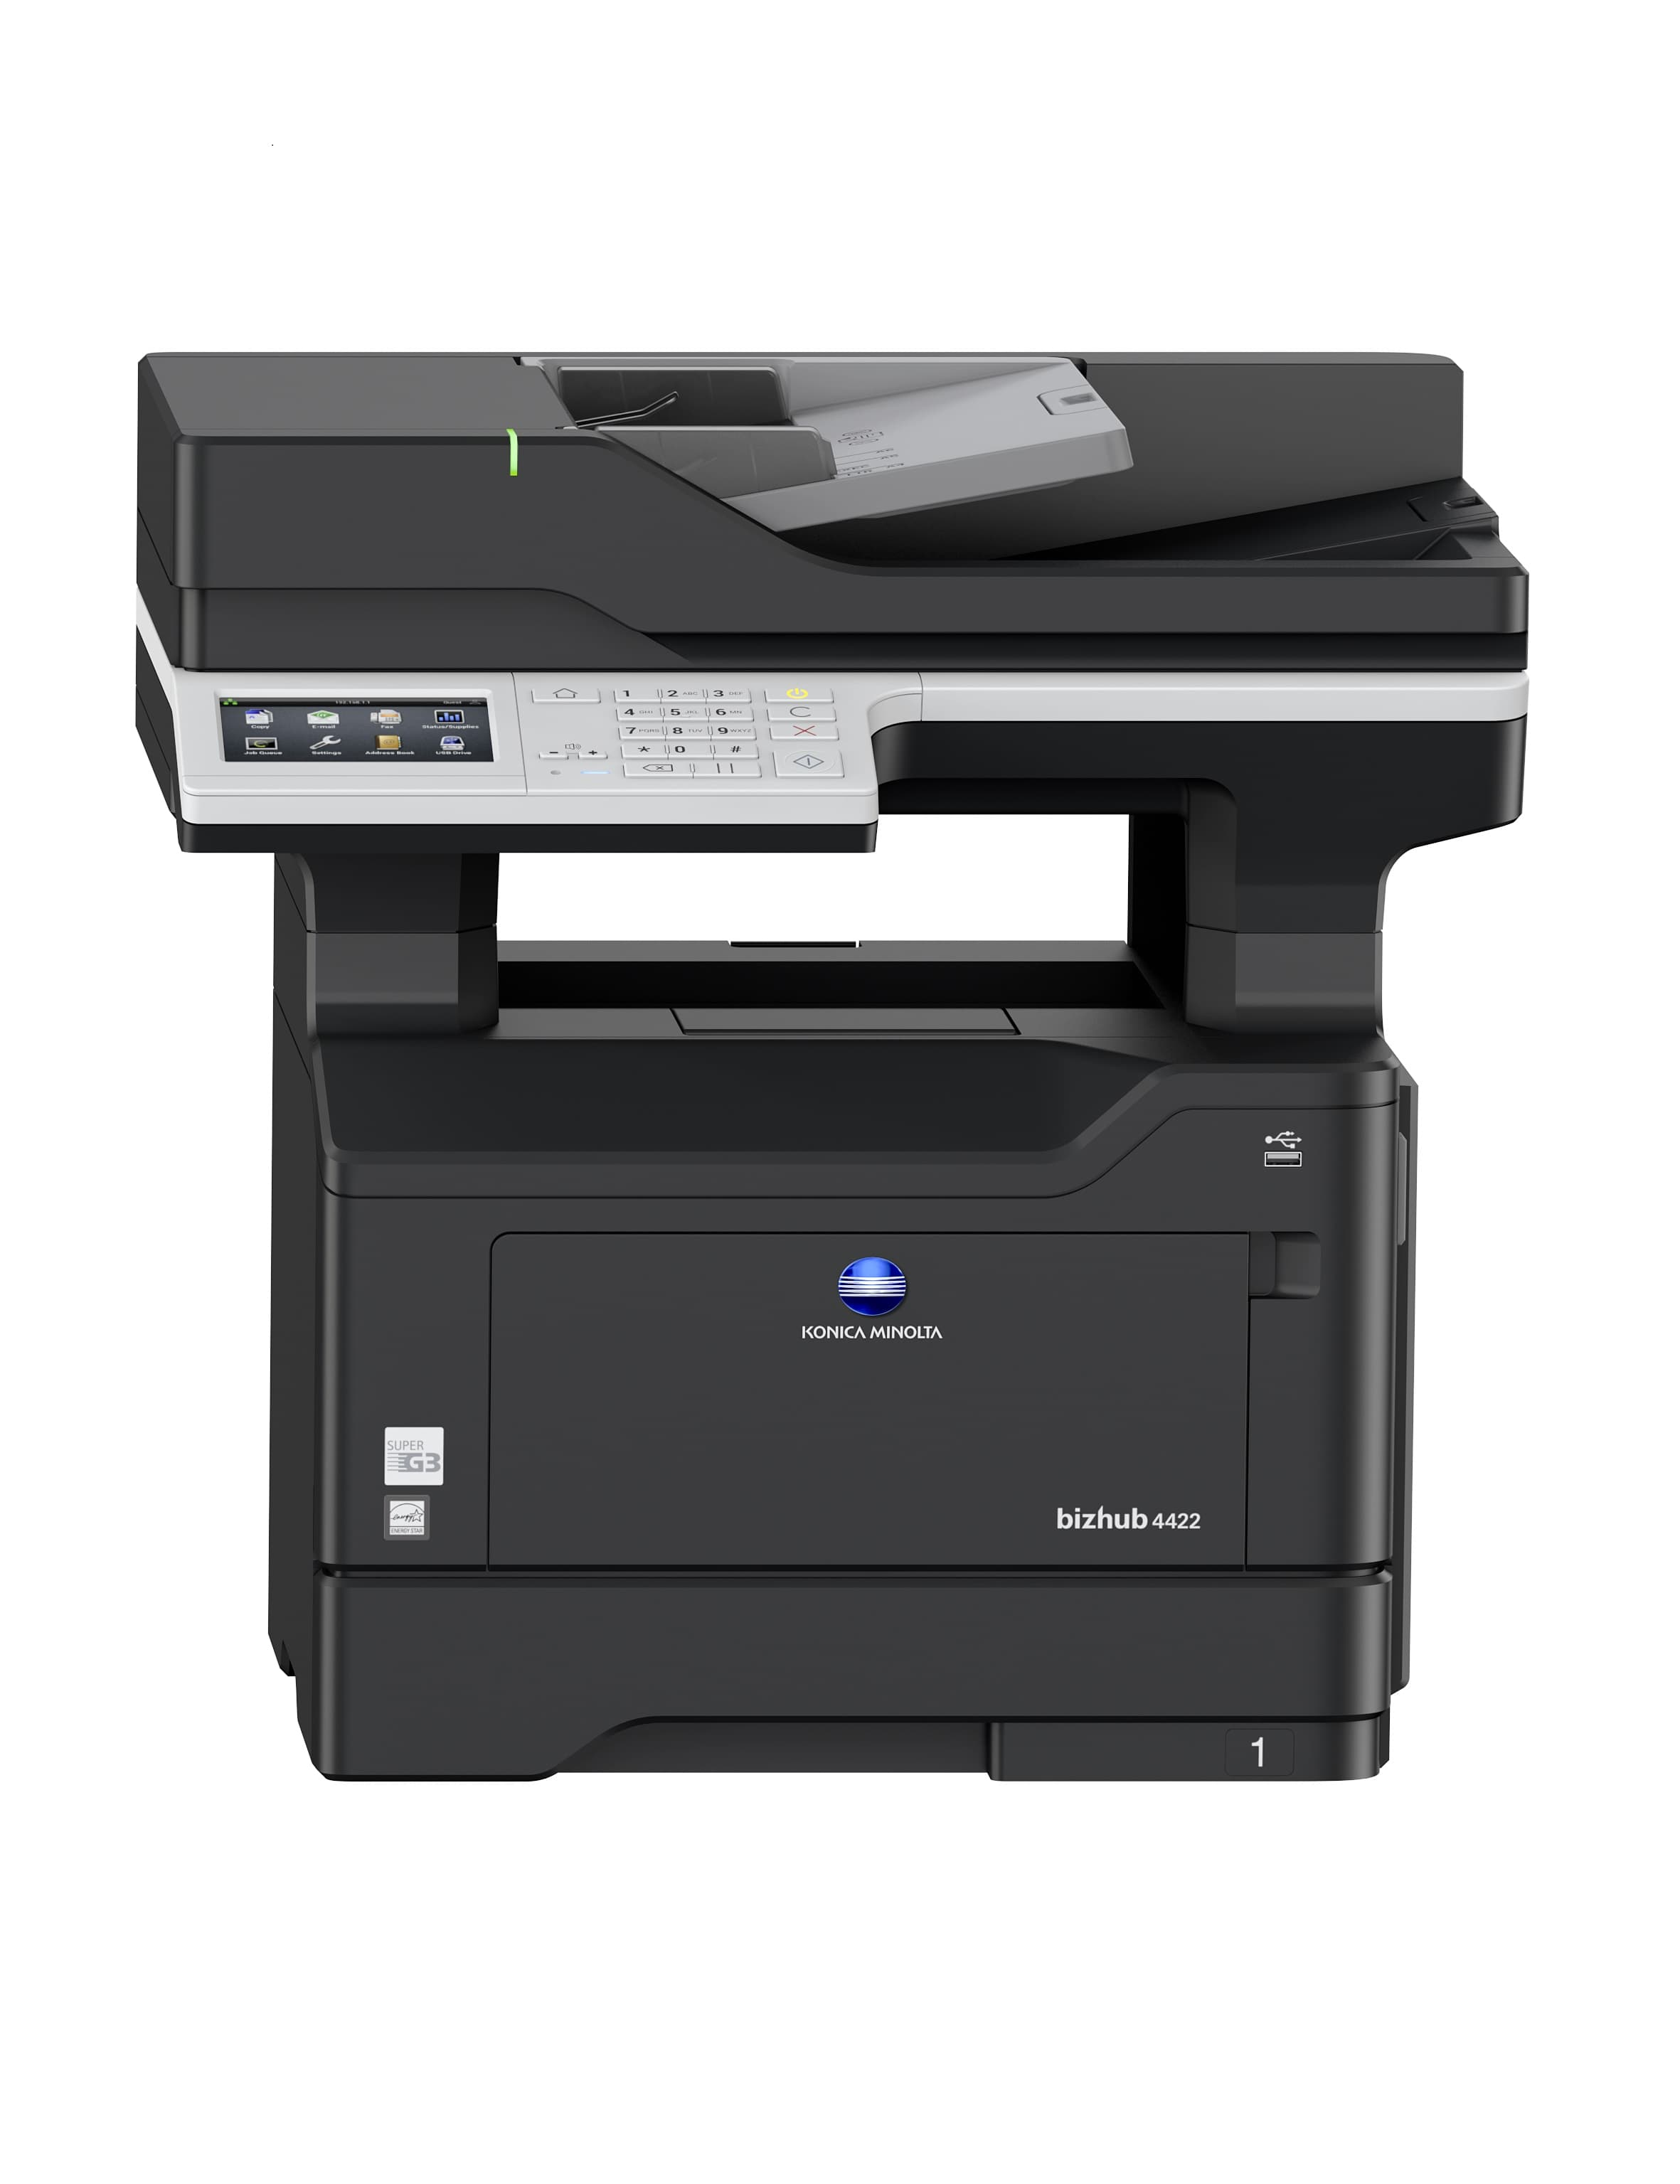 bizhub 4422 Laser Printer & All-in-One